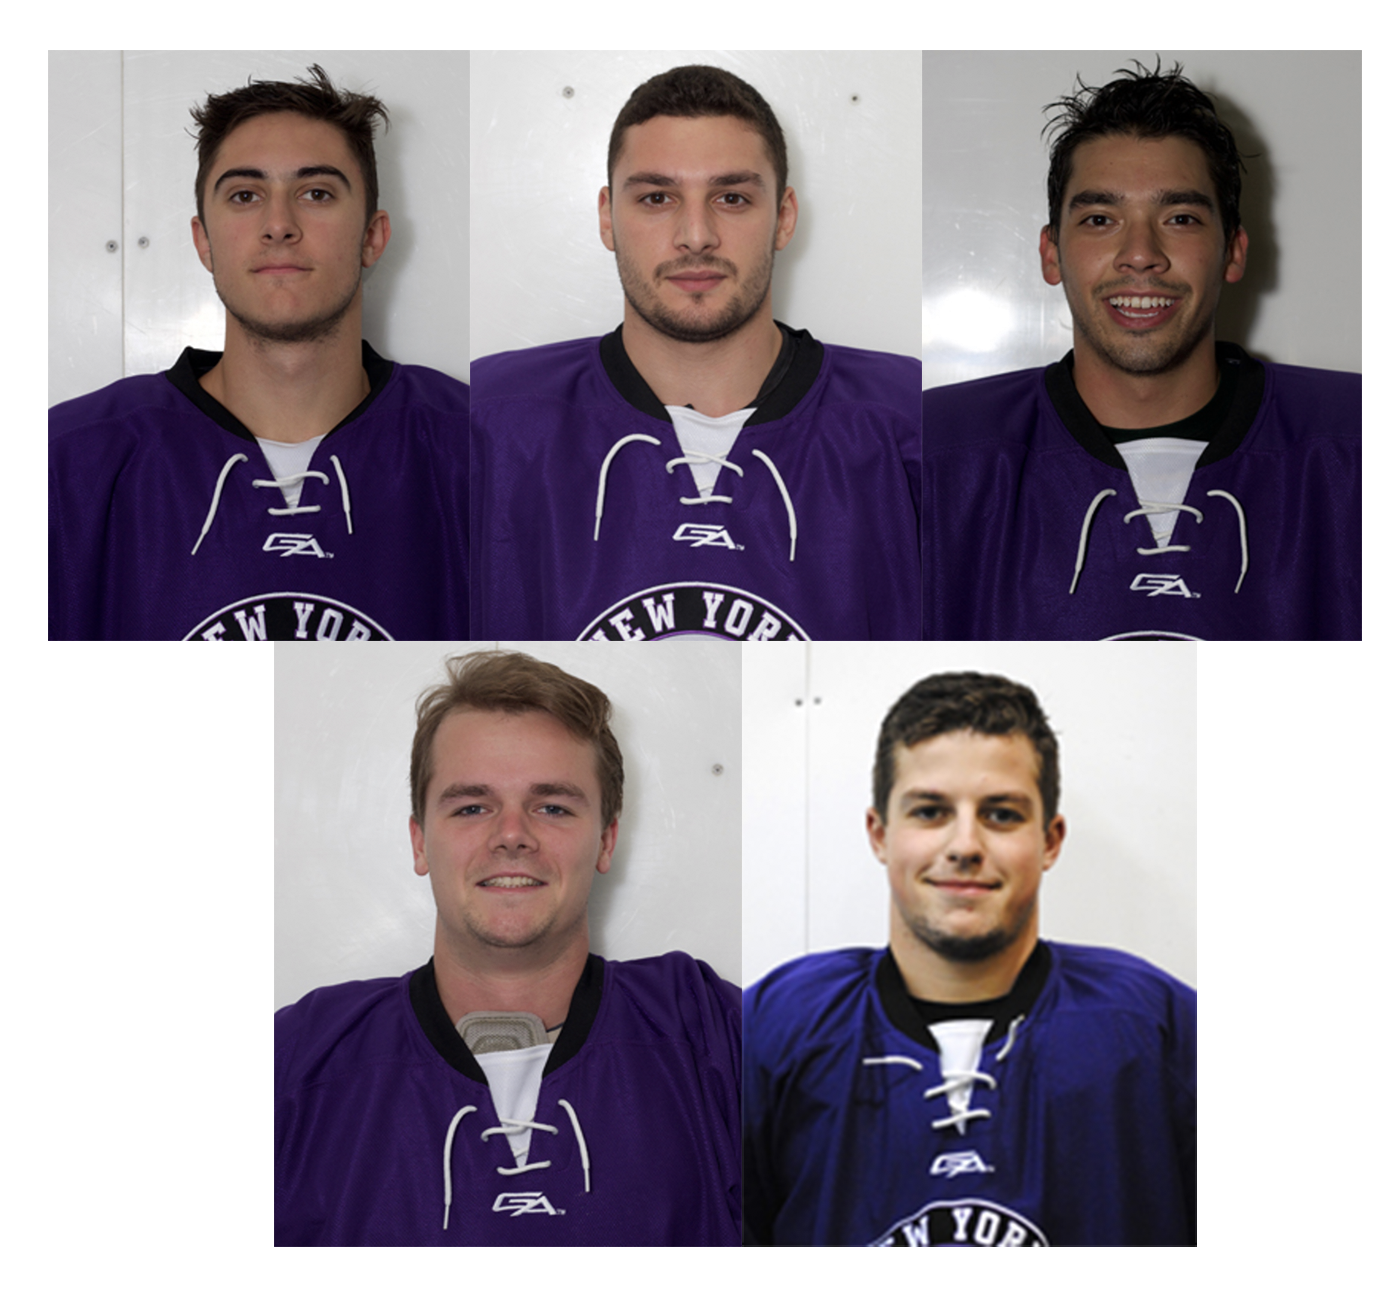 SPS senior Michael Conslato, SPS junior Mason Gallegos, SPS junior John Kowalewski, SPS senior Steven Esposito and SPS sophomore Giancarlo Pochintesta were the five starters for the game on Dec. 1 against Drexel University. Their next game will be on Friday, Dec. 8 against SUNY Stony Brook at Sky Rink at Chelsea Piers.